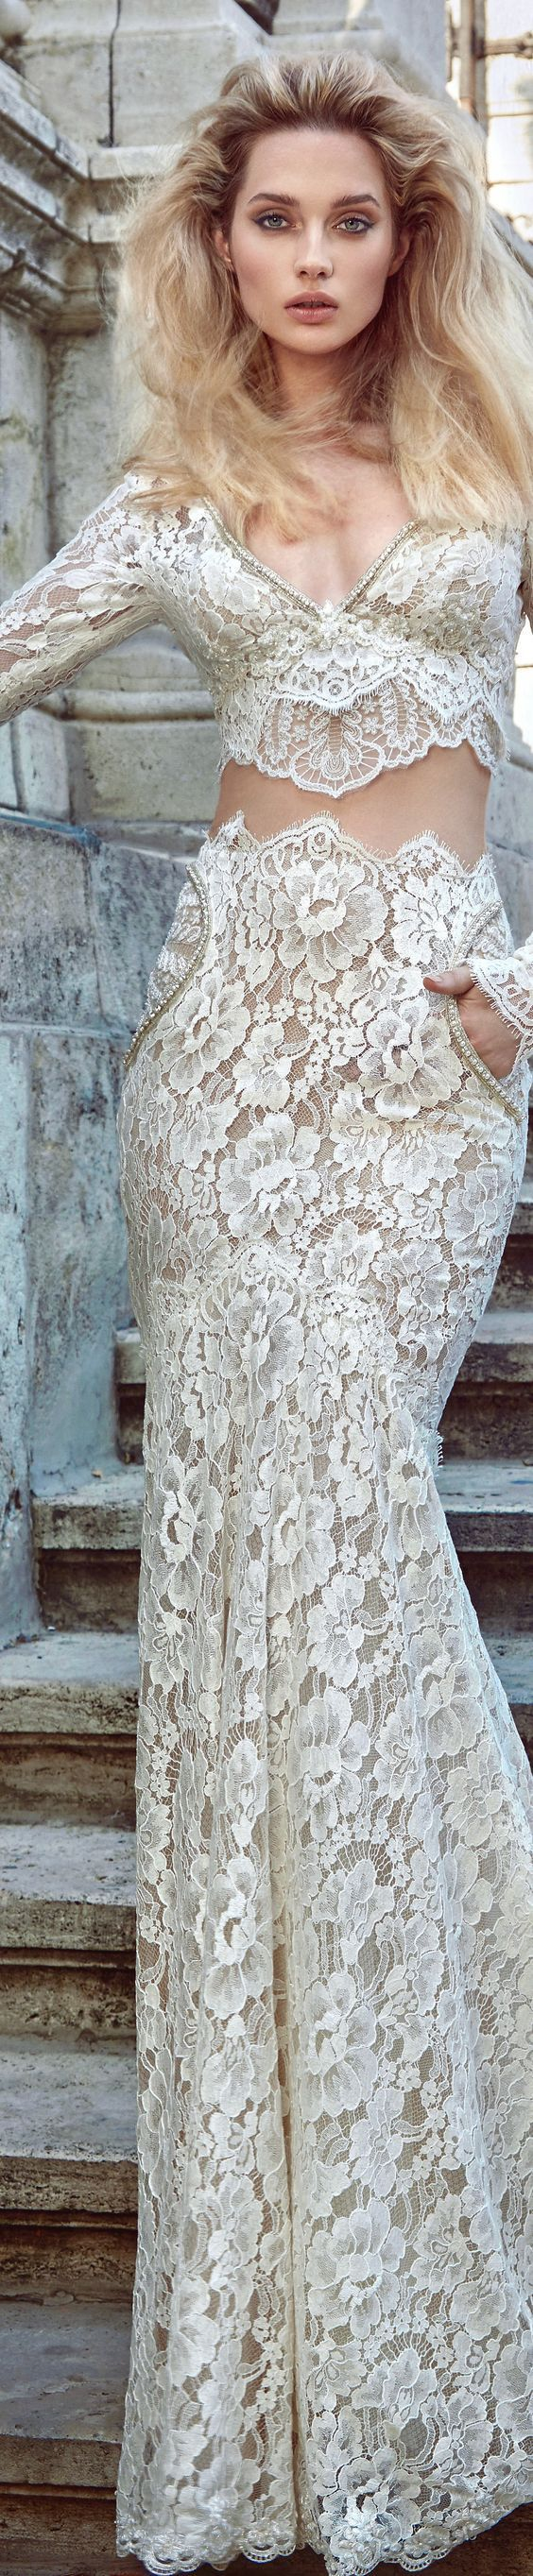 """Wedding Dress by Galia Lahav. Our new campaign collection """"The Ivory Tower"""", crafted with art & love and inspired from the gothic & romantic middle ages setting is made for the modern bride of today and tomorrow! Silhouettes and forms inspired by Gothic a"""